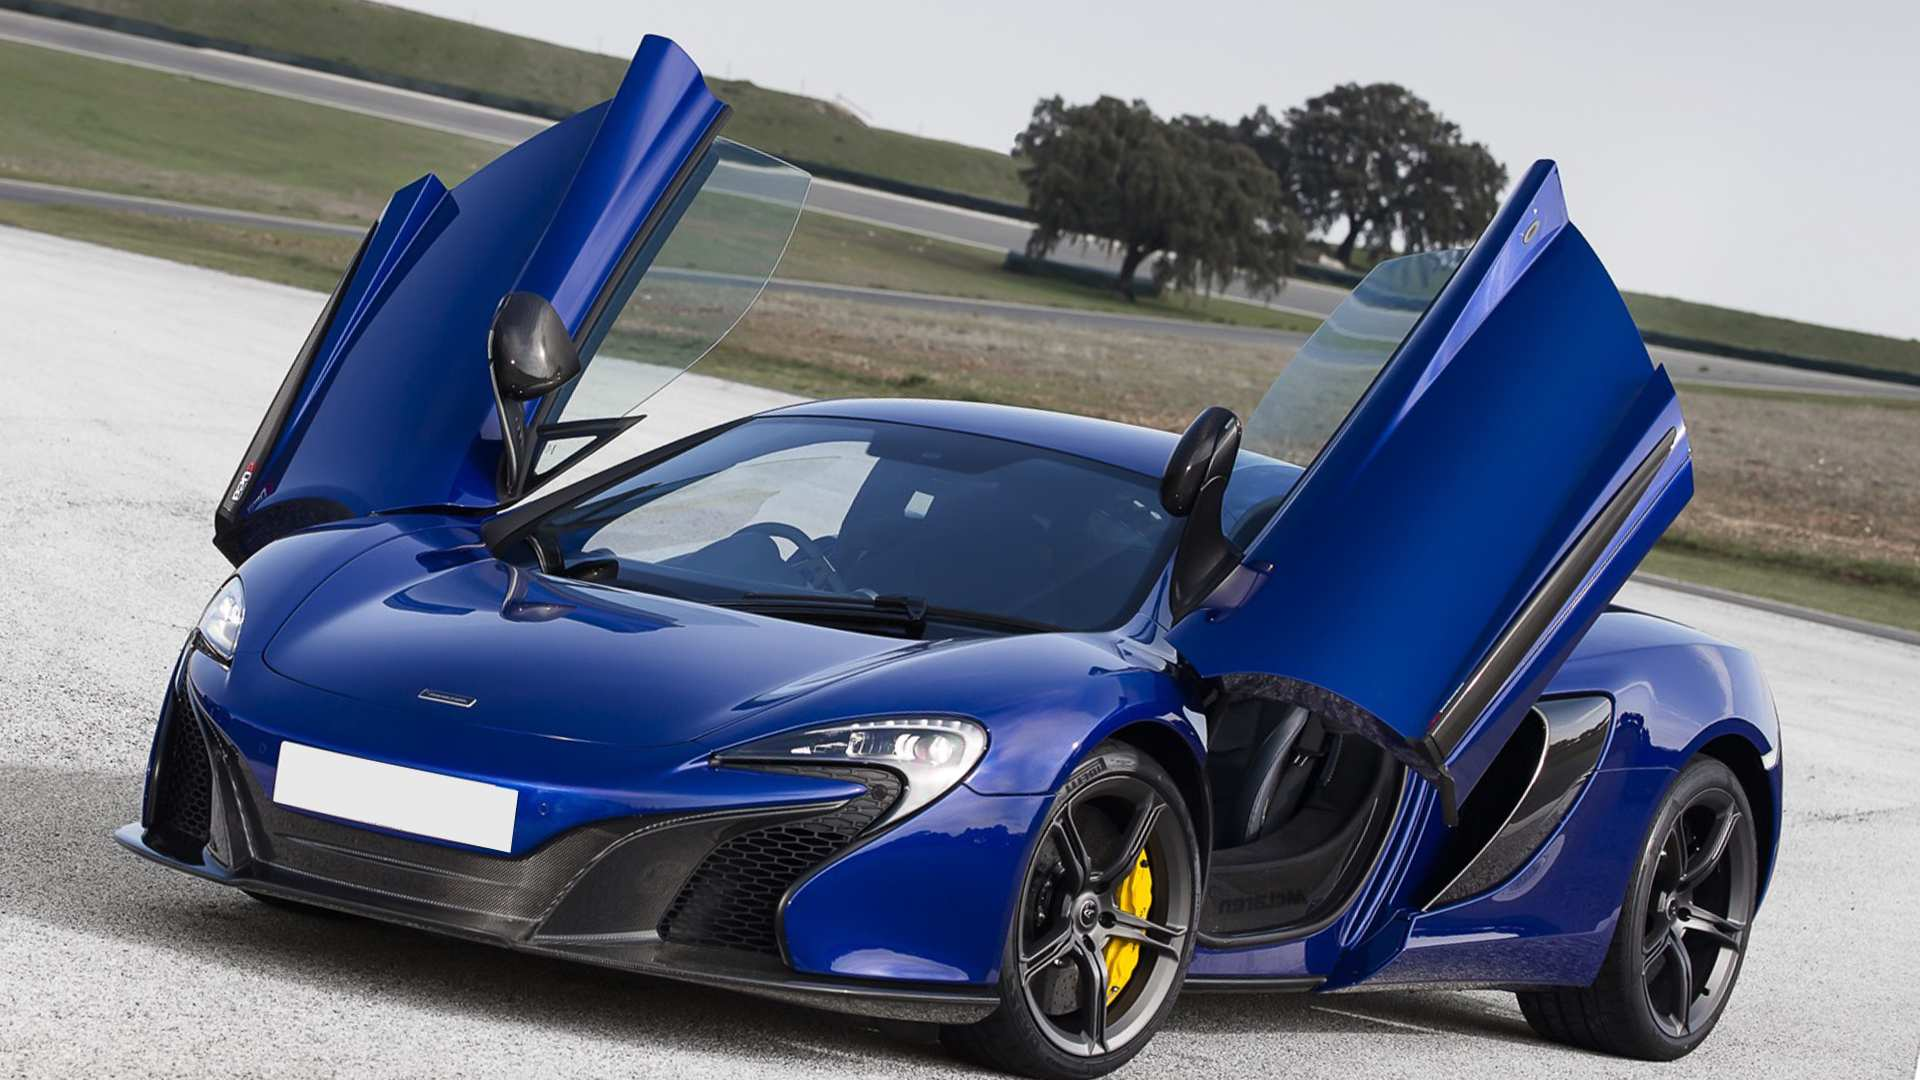 67 New 2019 Mclaren P1 Price First Drive by 2019 Mclaren P1 Price